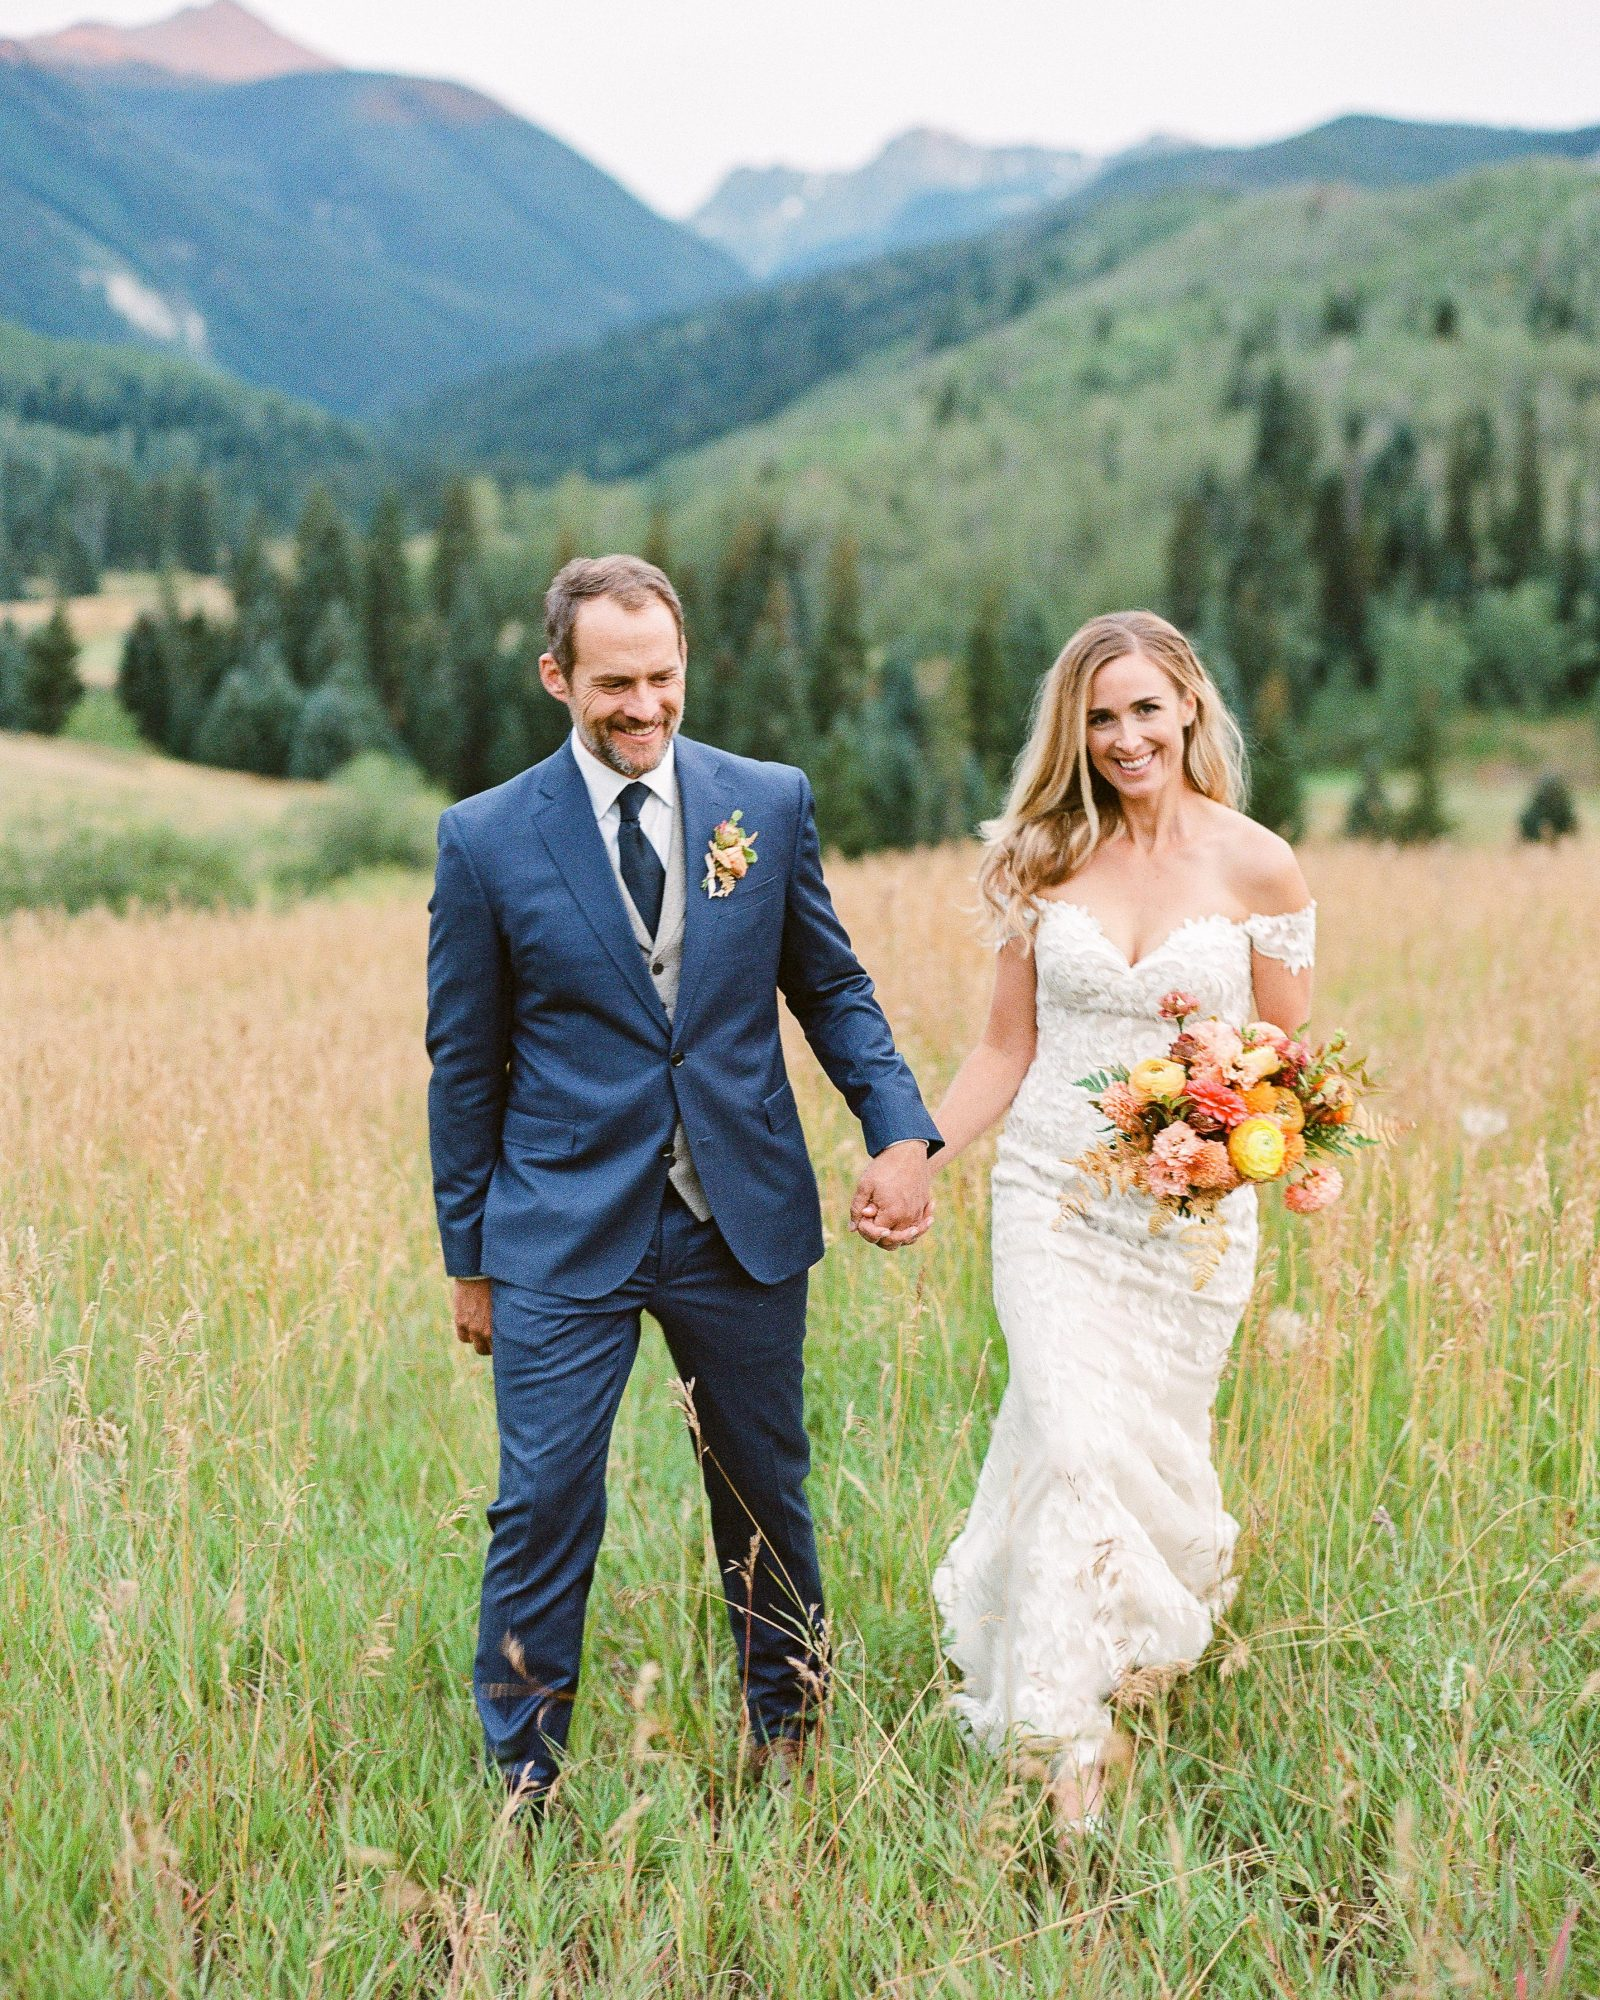 jill phil wedding couple walk in grass field with mountain view